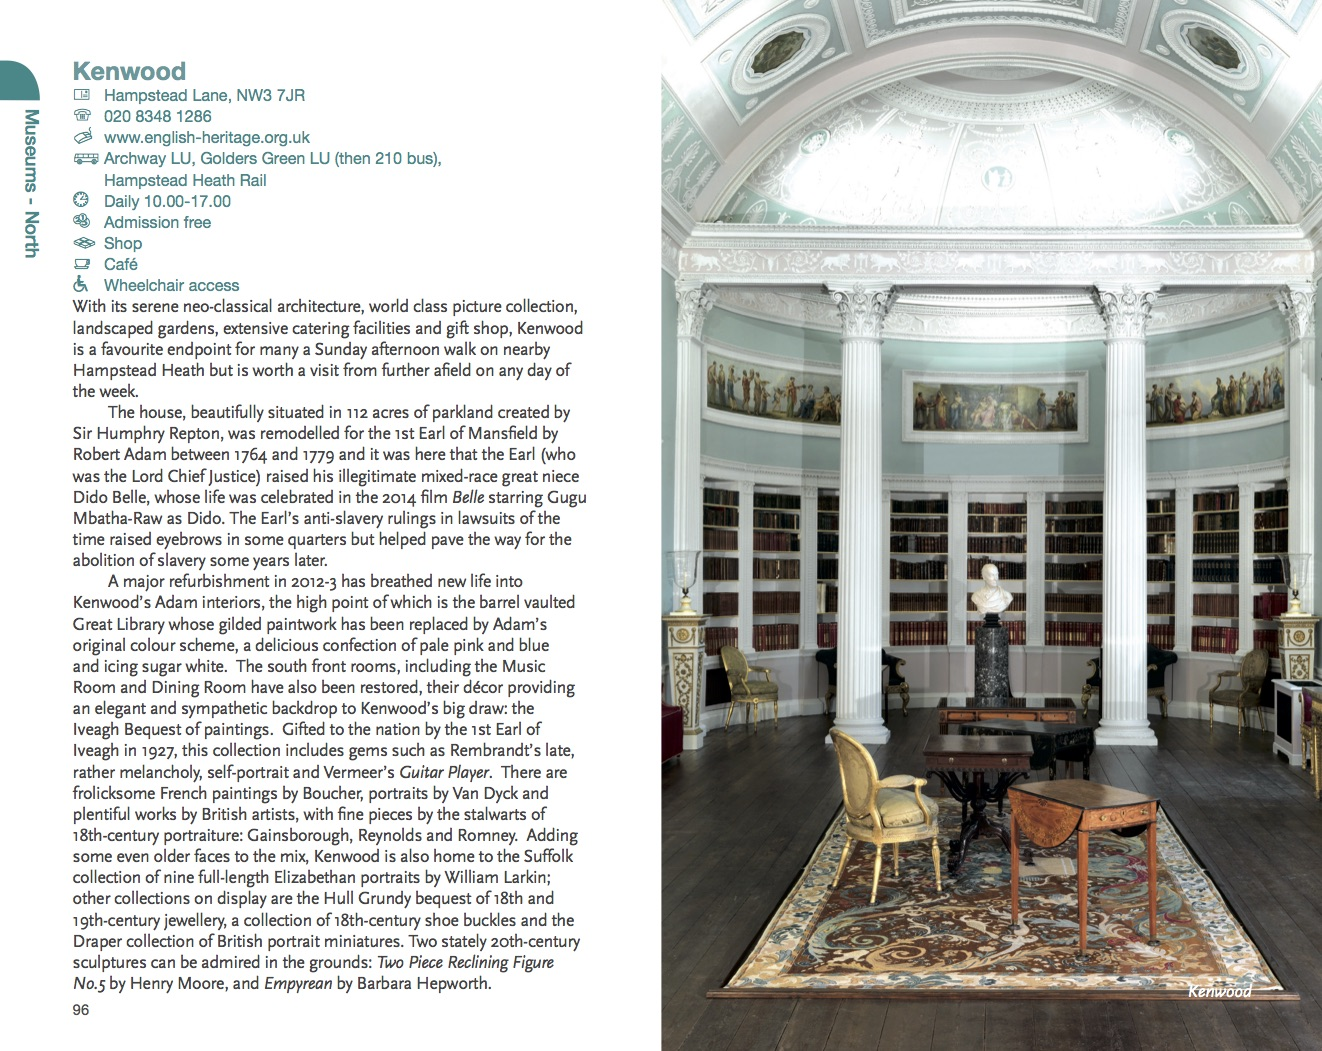 Guidebook-entry-for-Keats-House-and-Kenwood